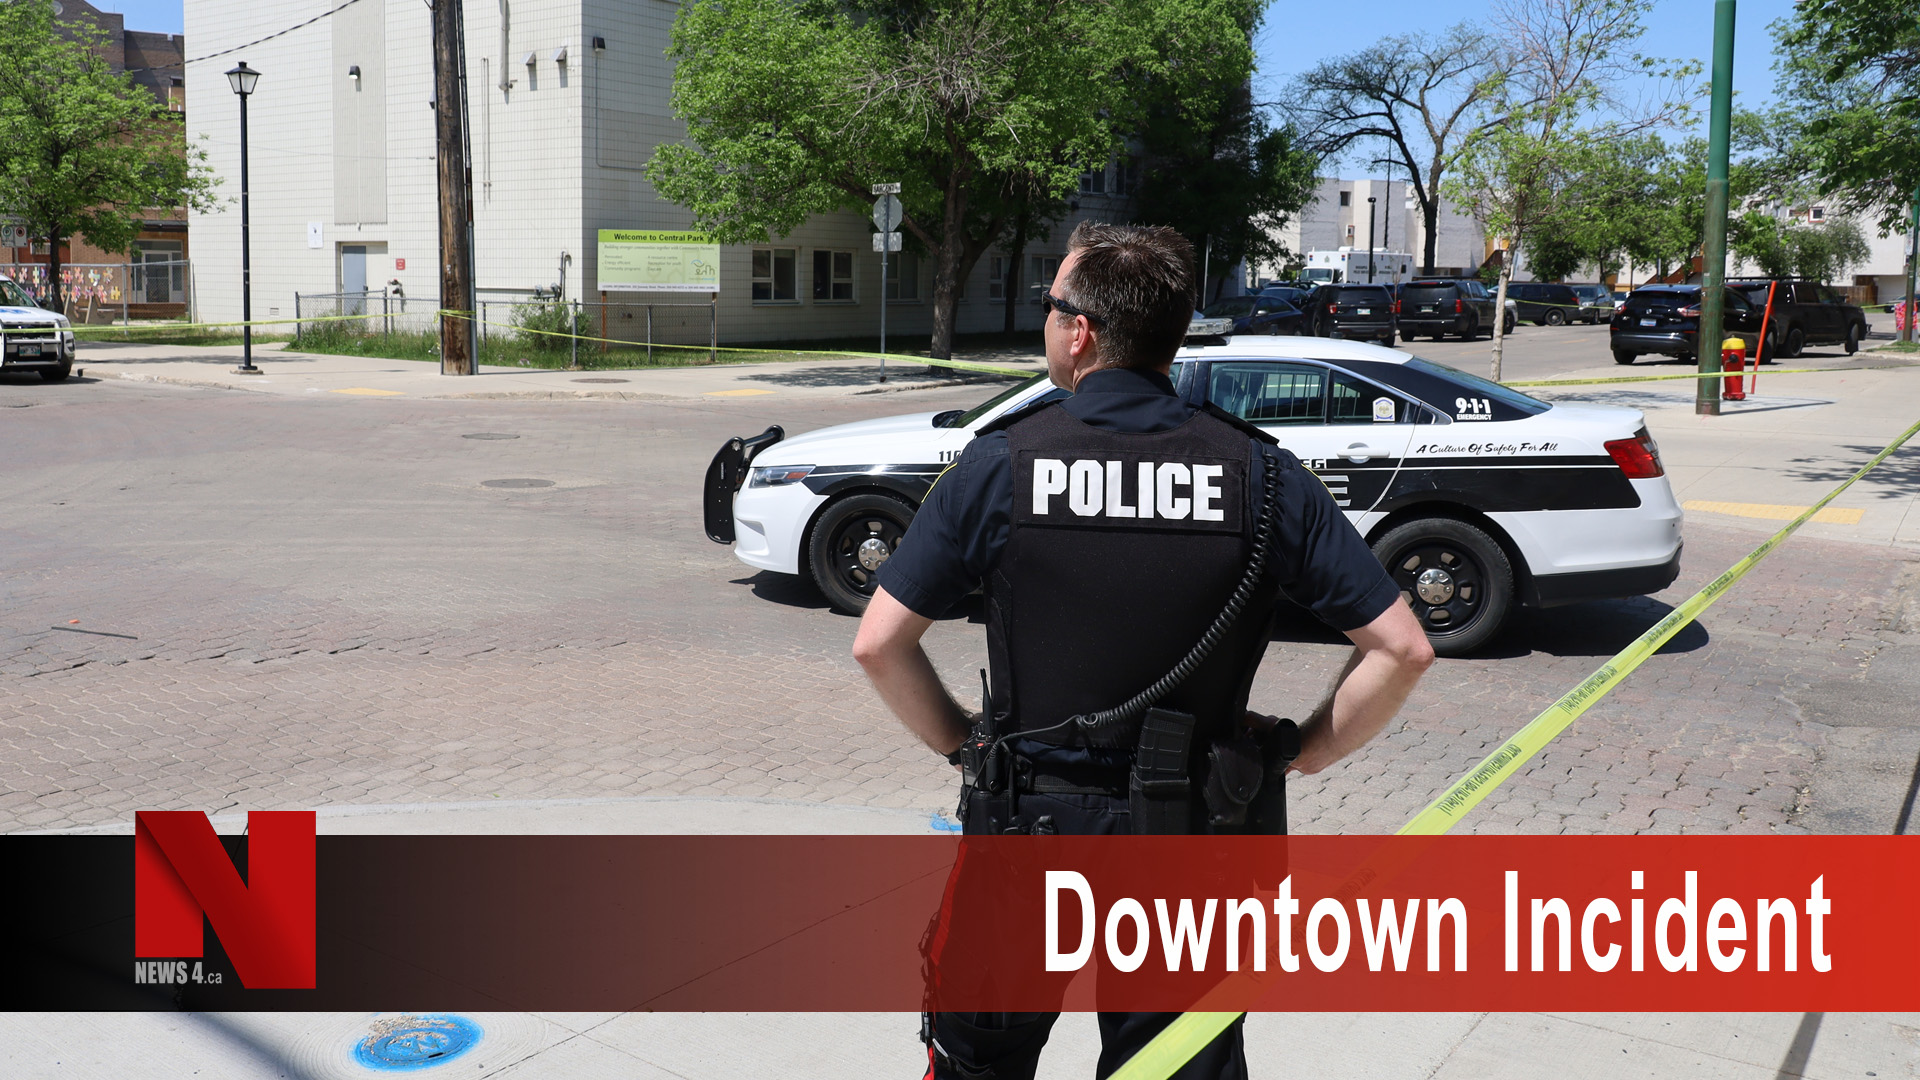 Downtown Incident